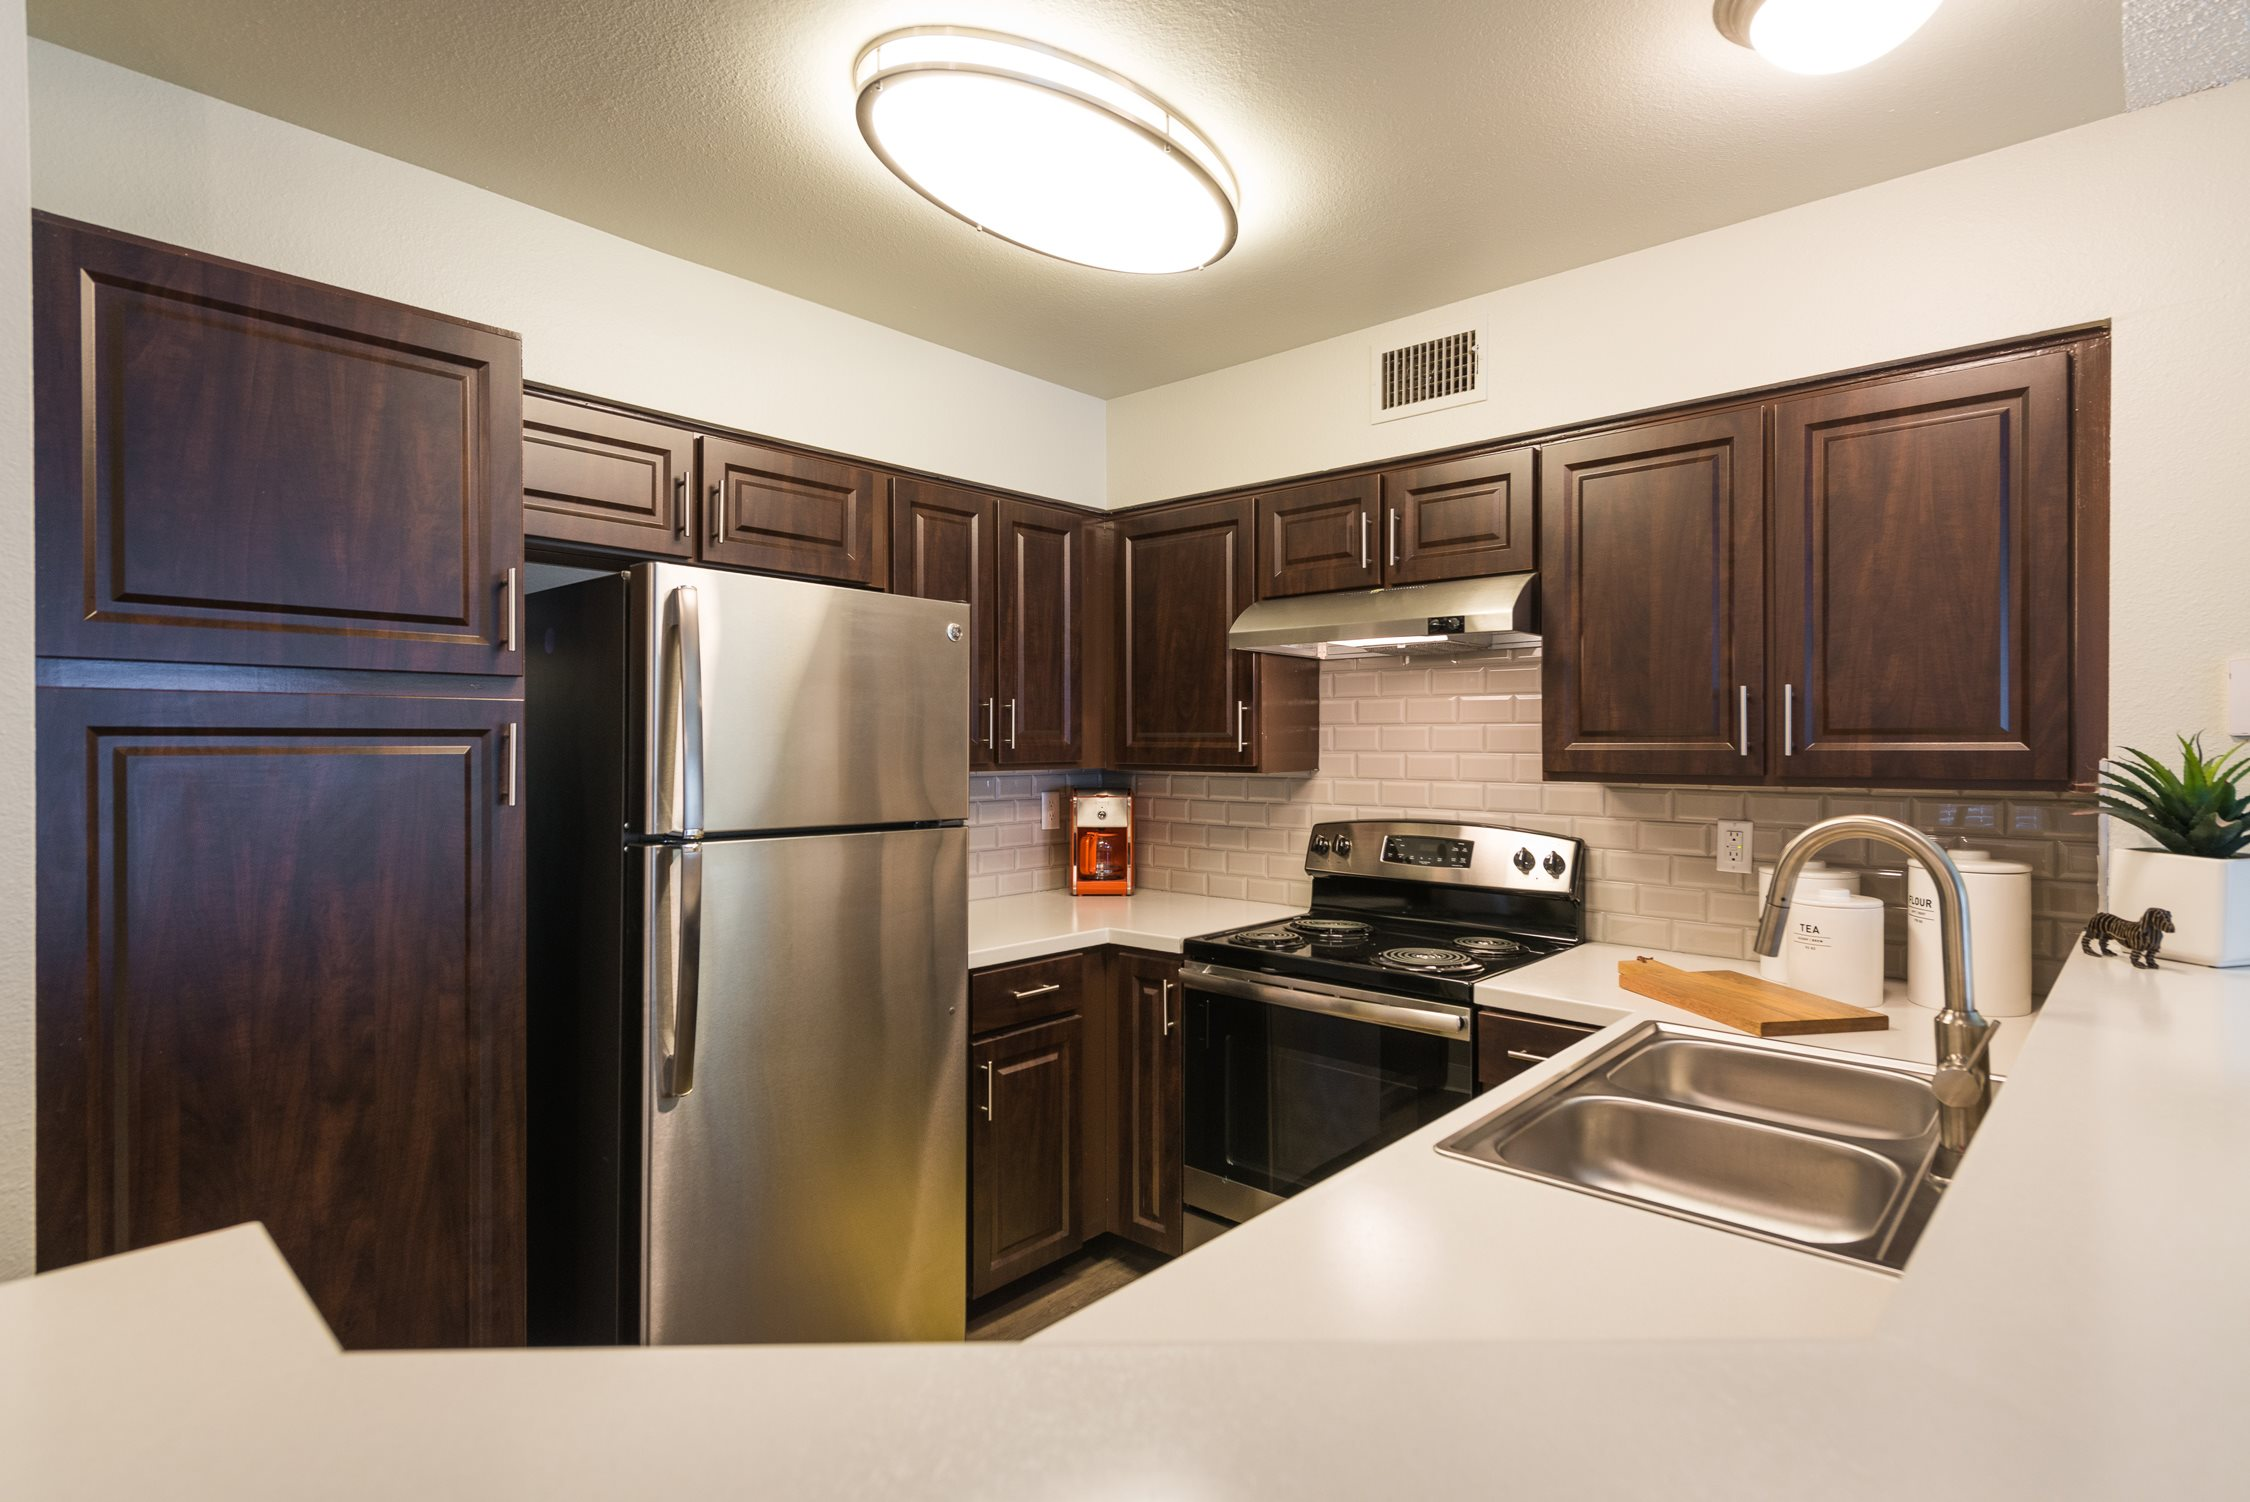 Kitchen at Conifer Creek Apartments in Aurora, IL